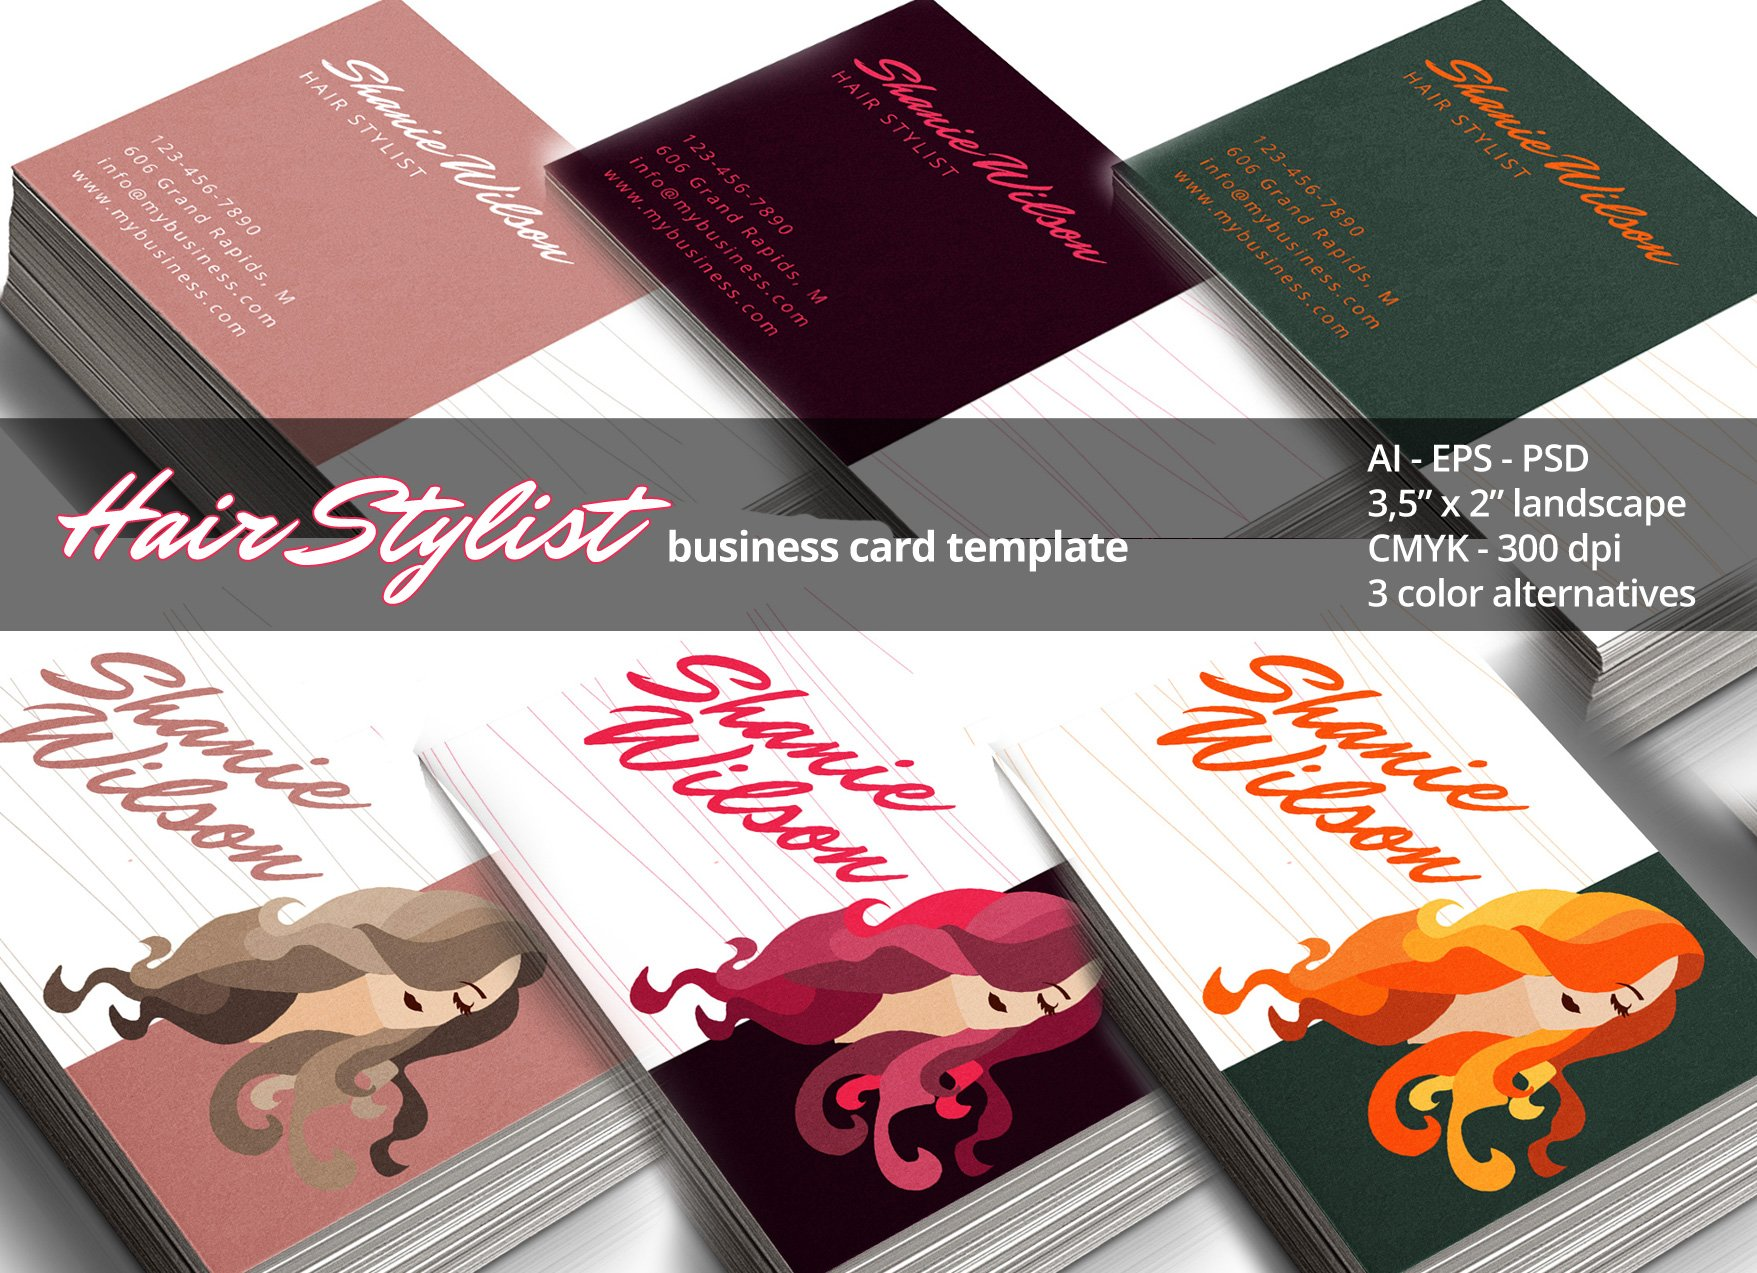 Hair Stylist Business Card ~ Business Card Templates ~ Creative Market